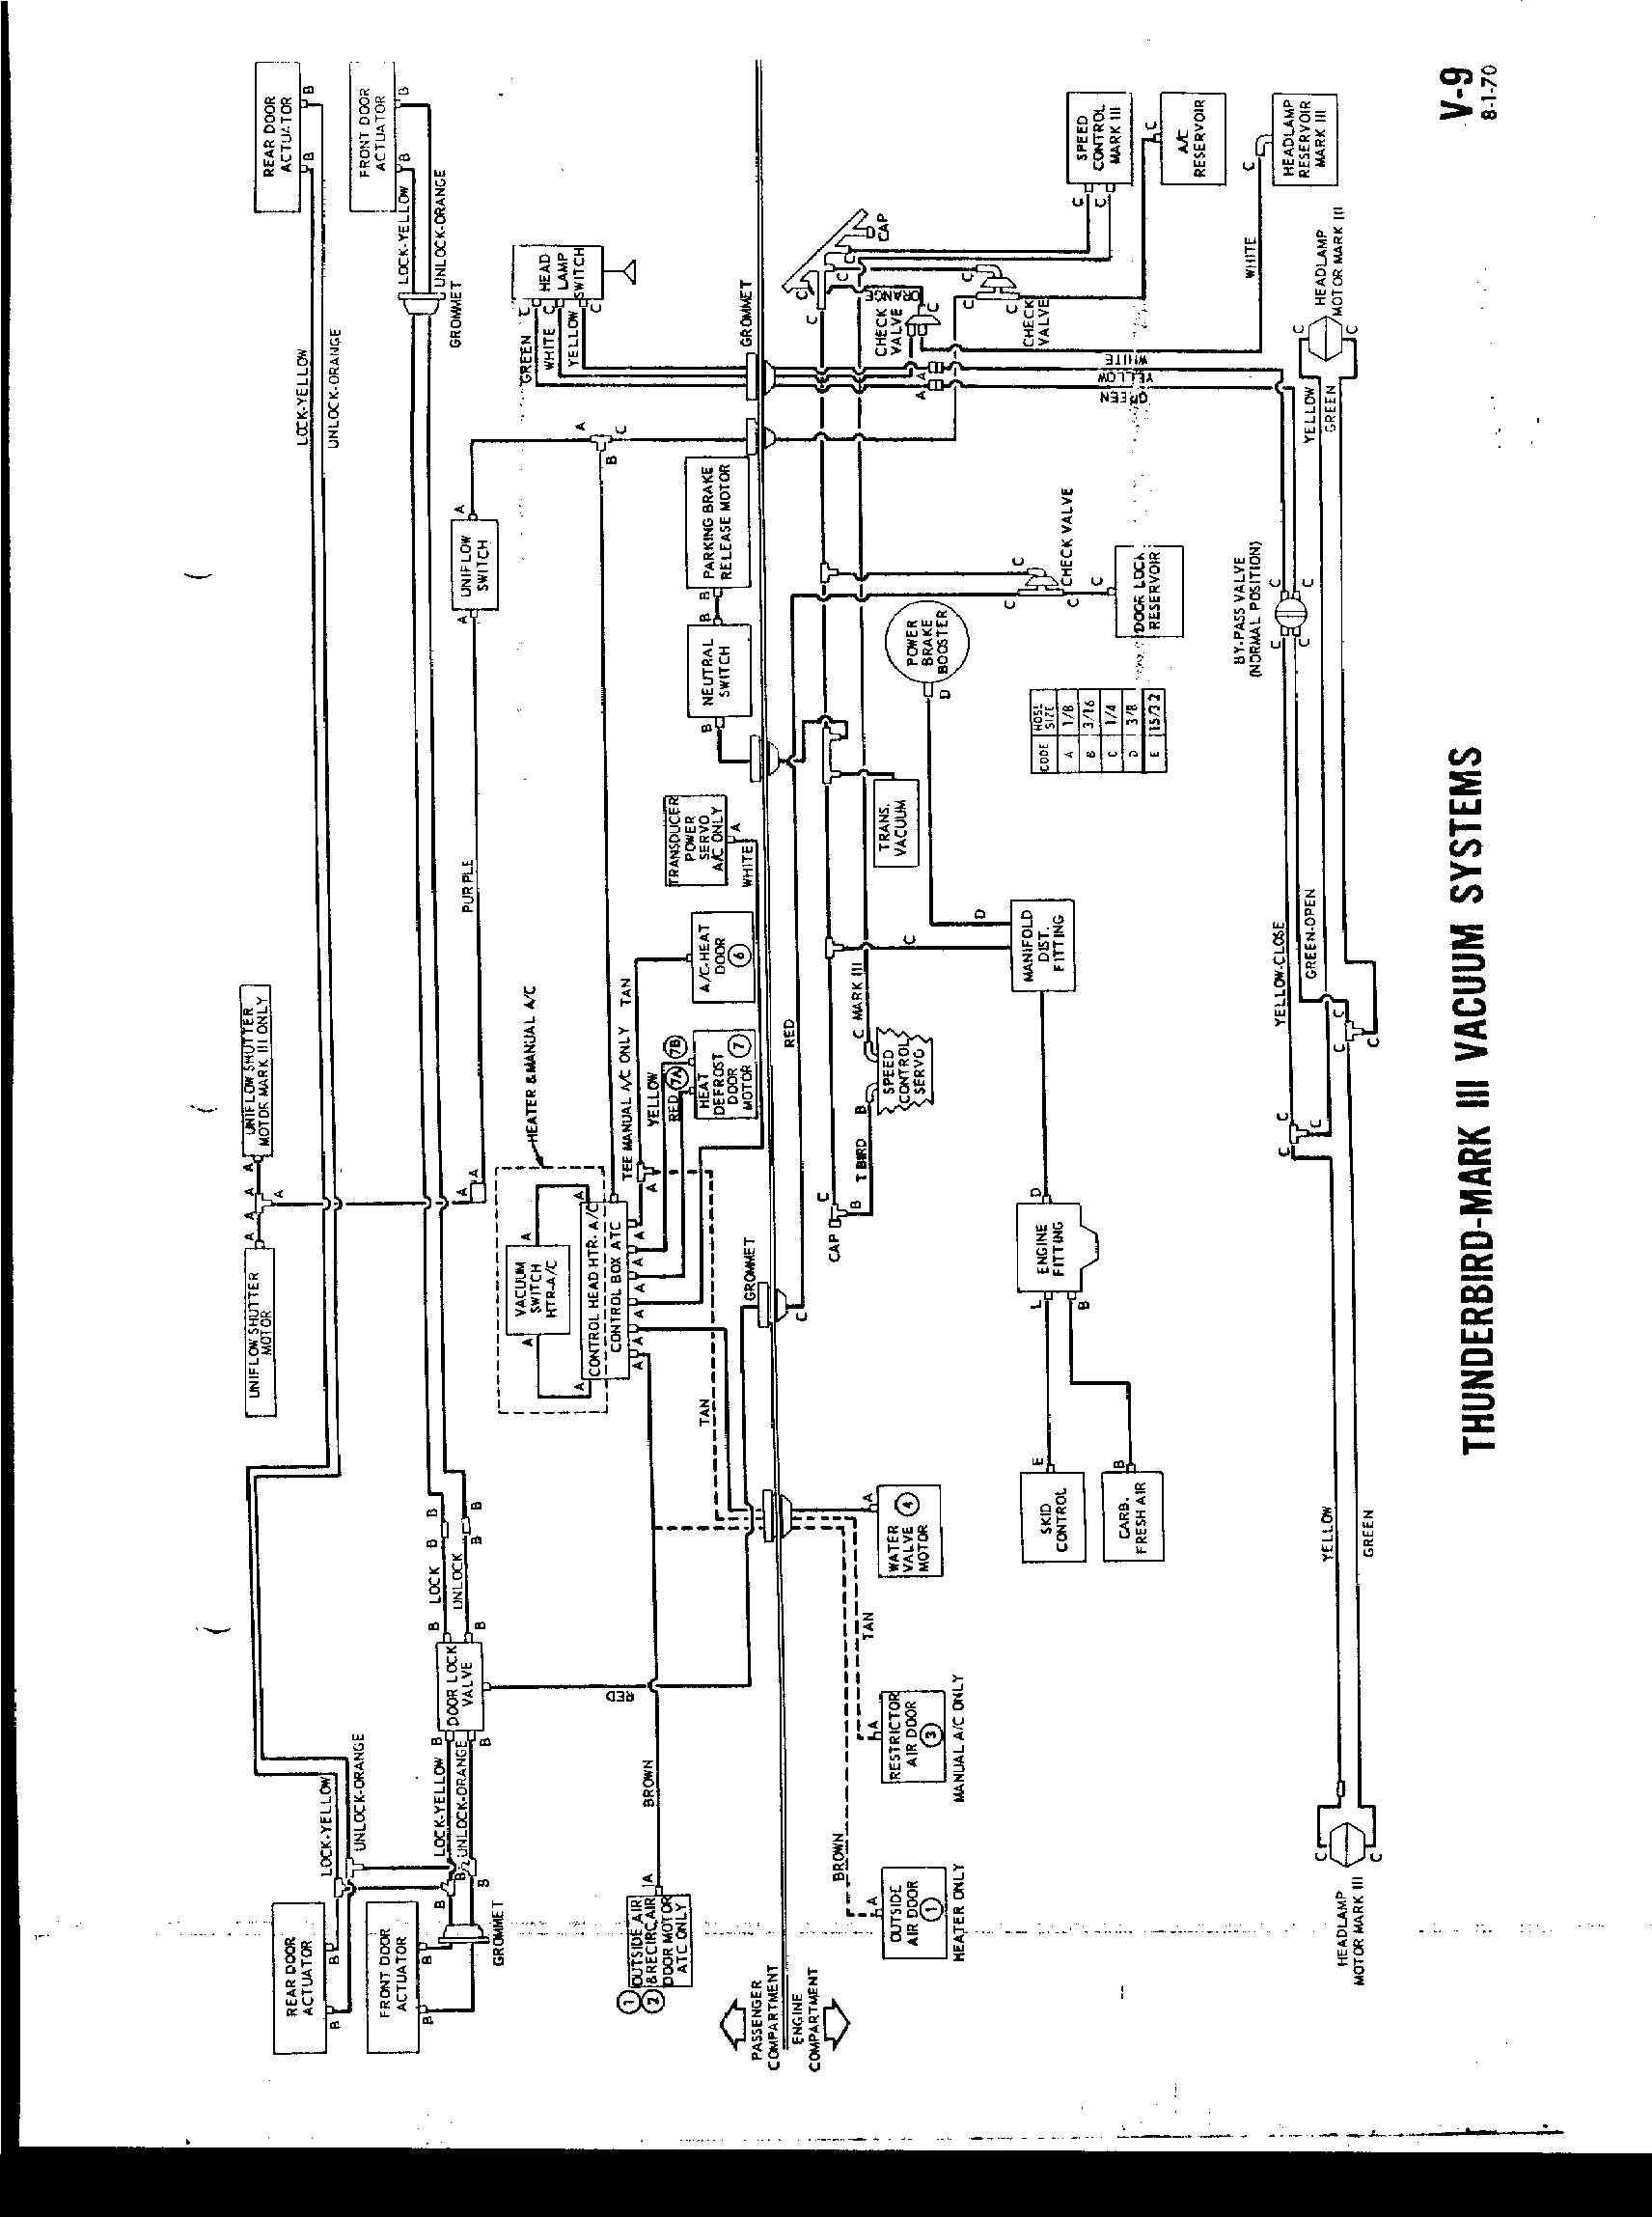 1961 ford galaxie fuse box  ford  auto fuse box diagram